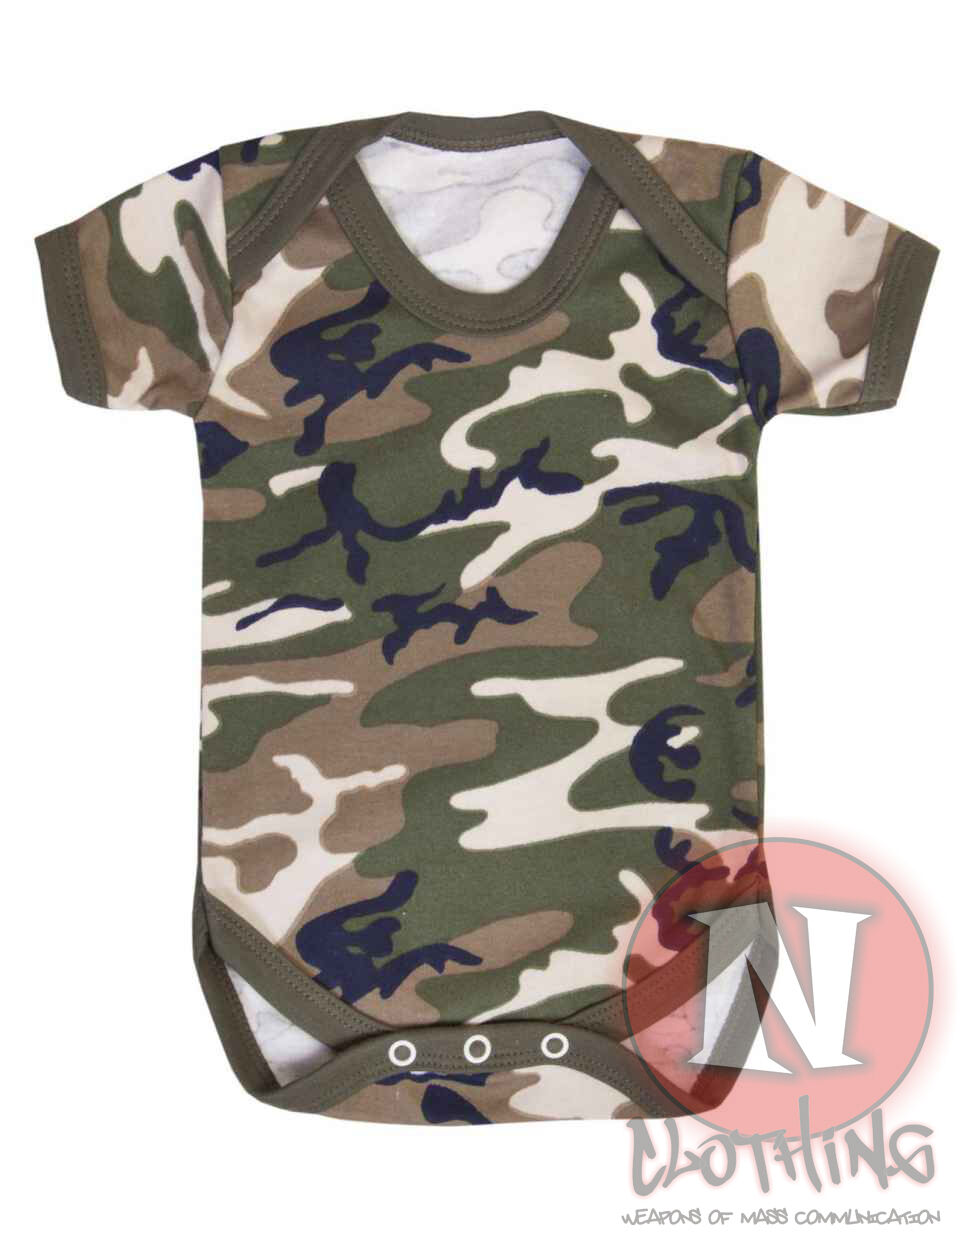 Camouflage fun babygrow baby suit vest all sizes cute baby shower army military